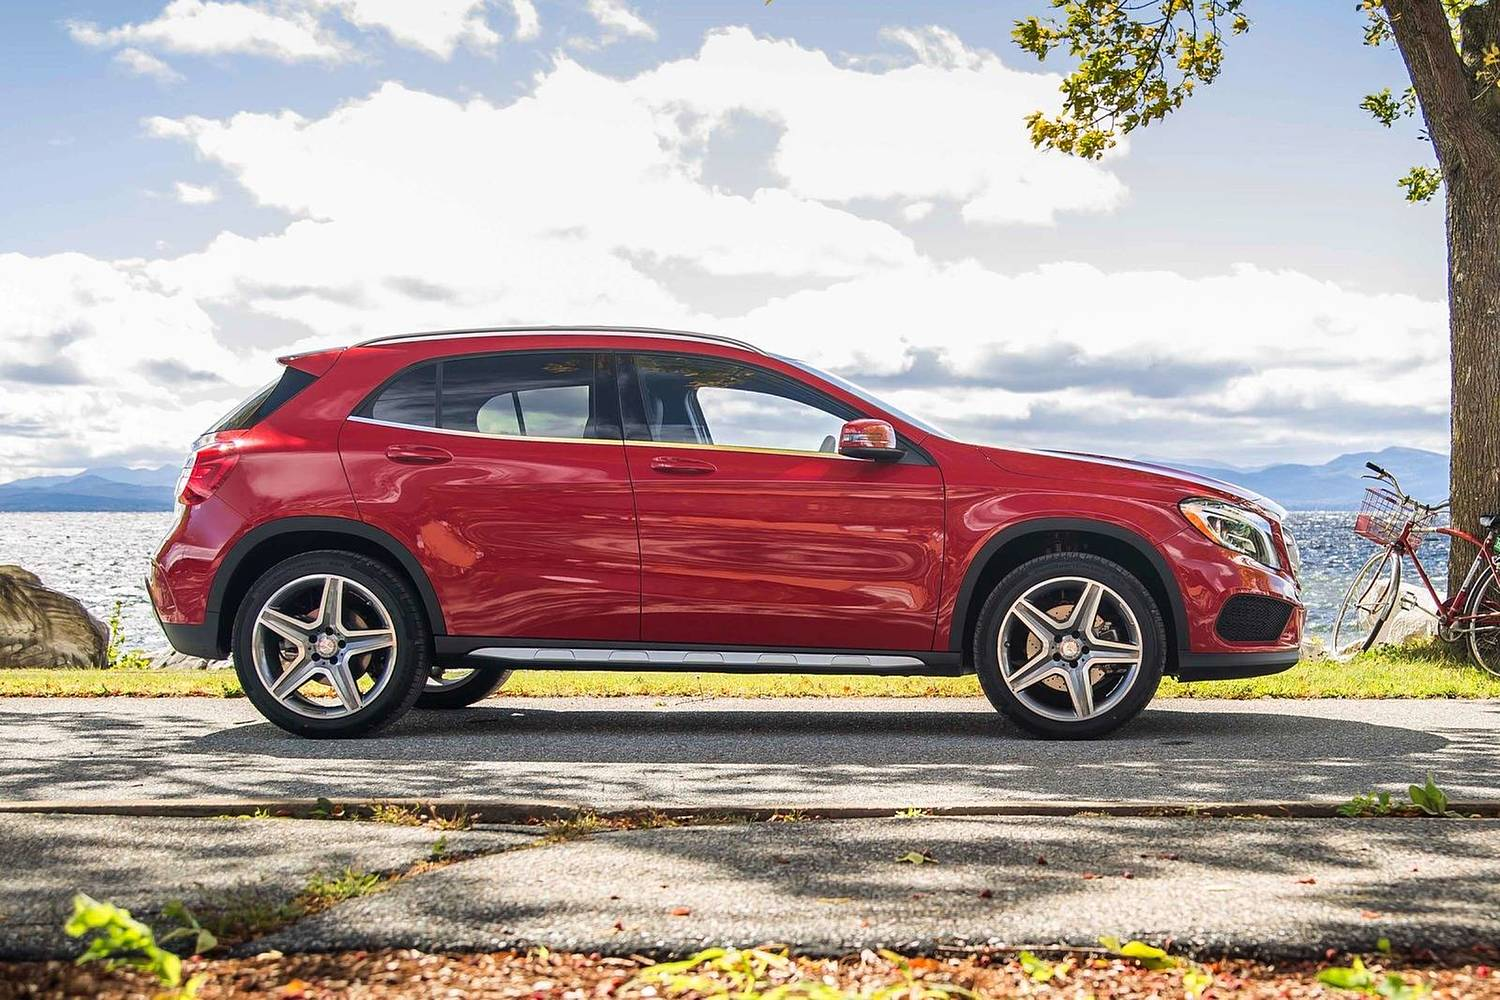 2017 Mercedes-Benz GLA-Class GLA250 4MATIC 4dr SUV Exterior. Sport Package Shown.